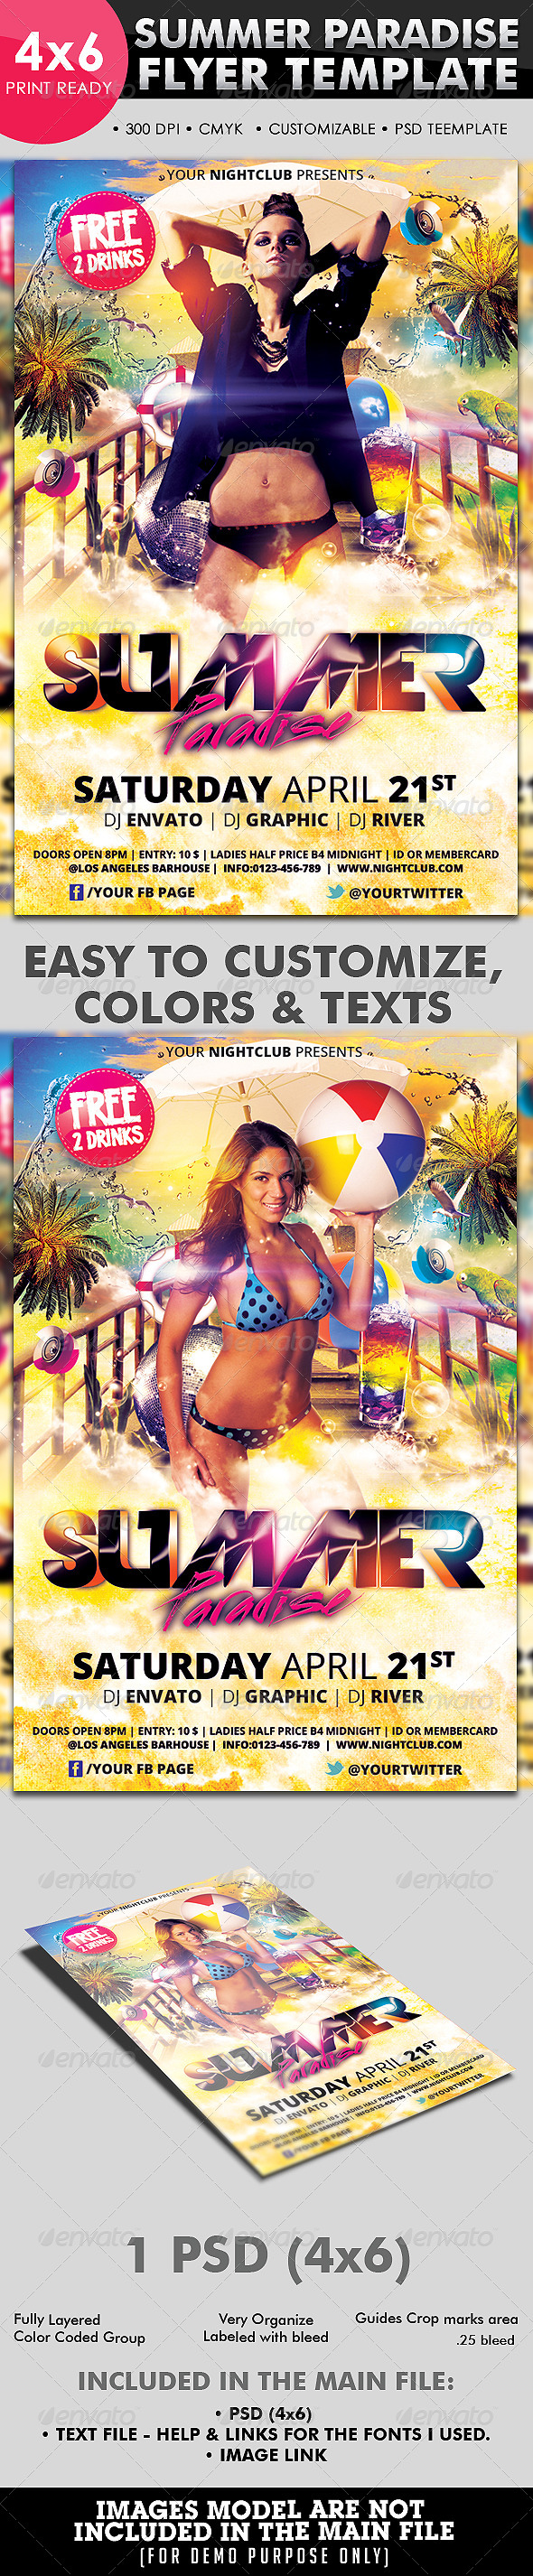 Summer Paradise Flyer Template - Clubs & Parties Events